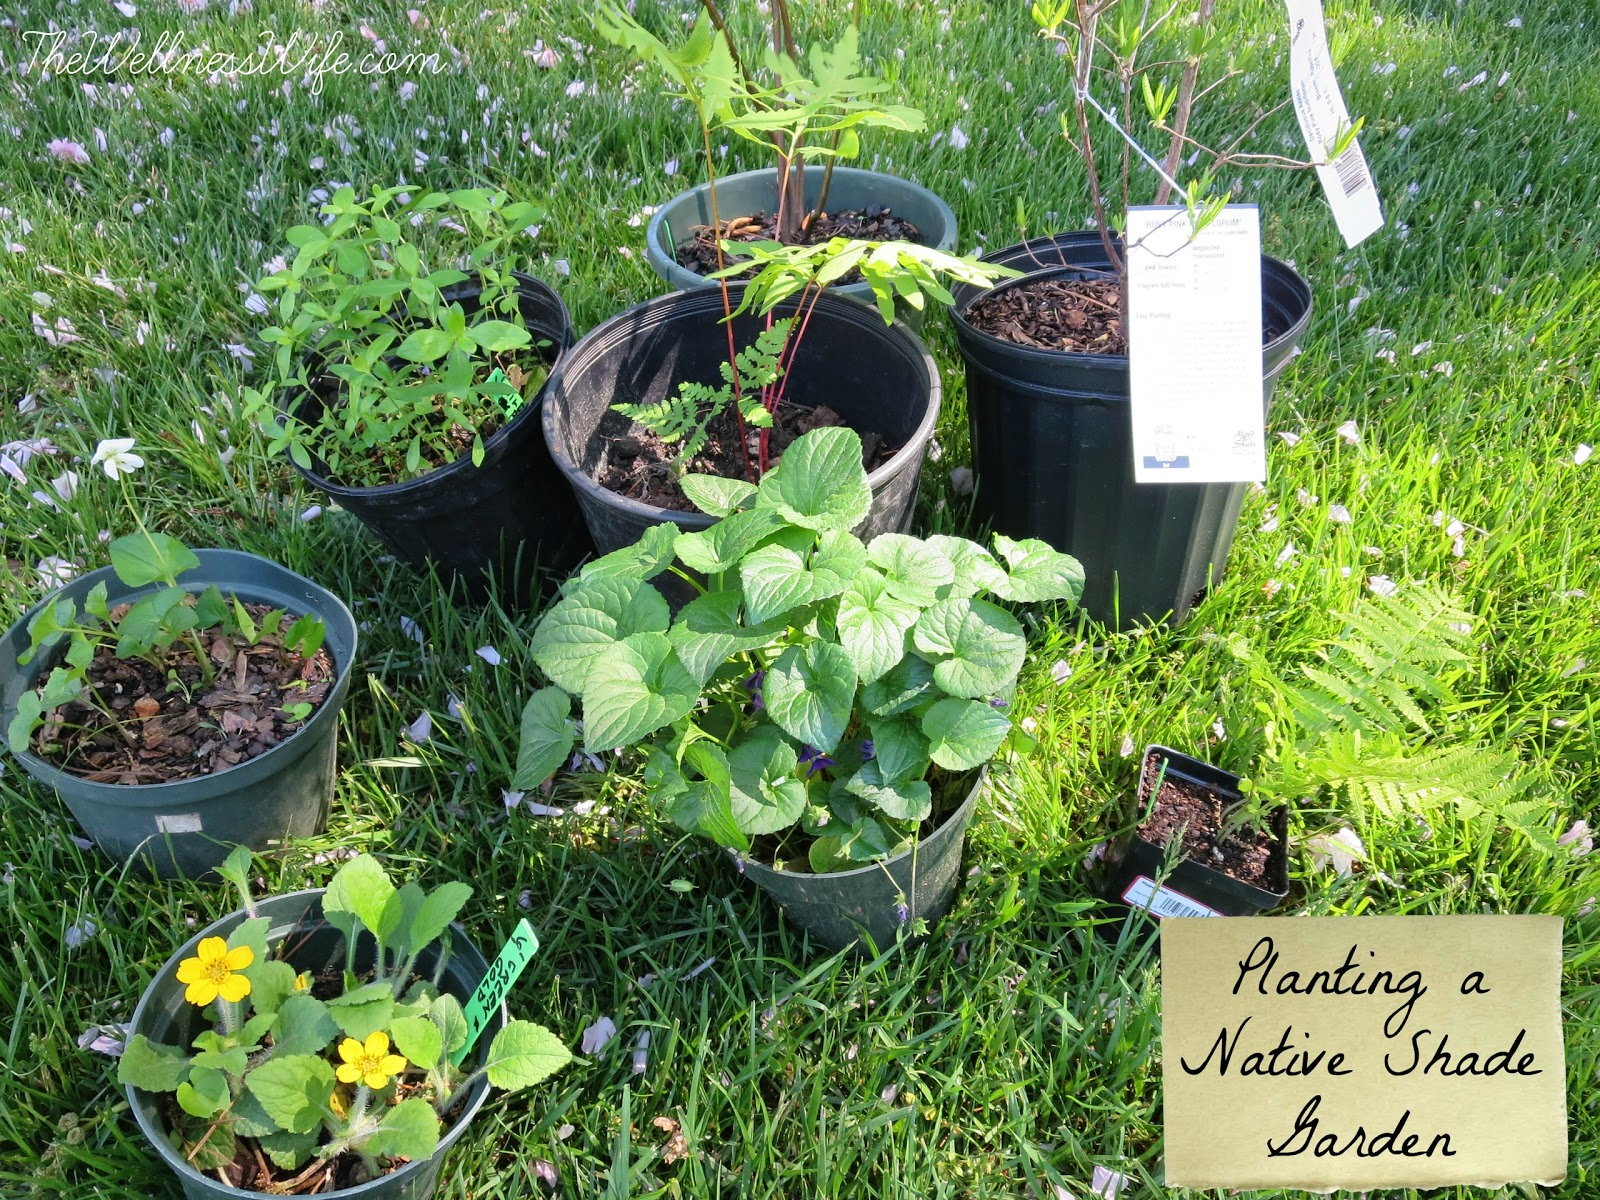 Planting a Shade Garden, shared by The Wellness Wife